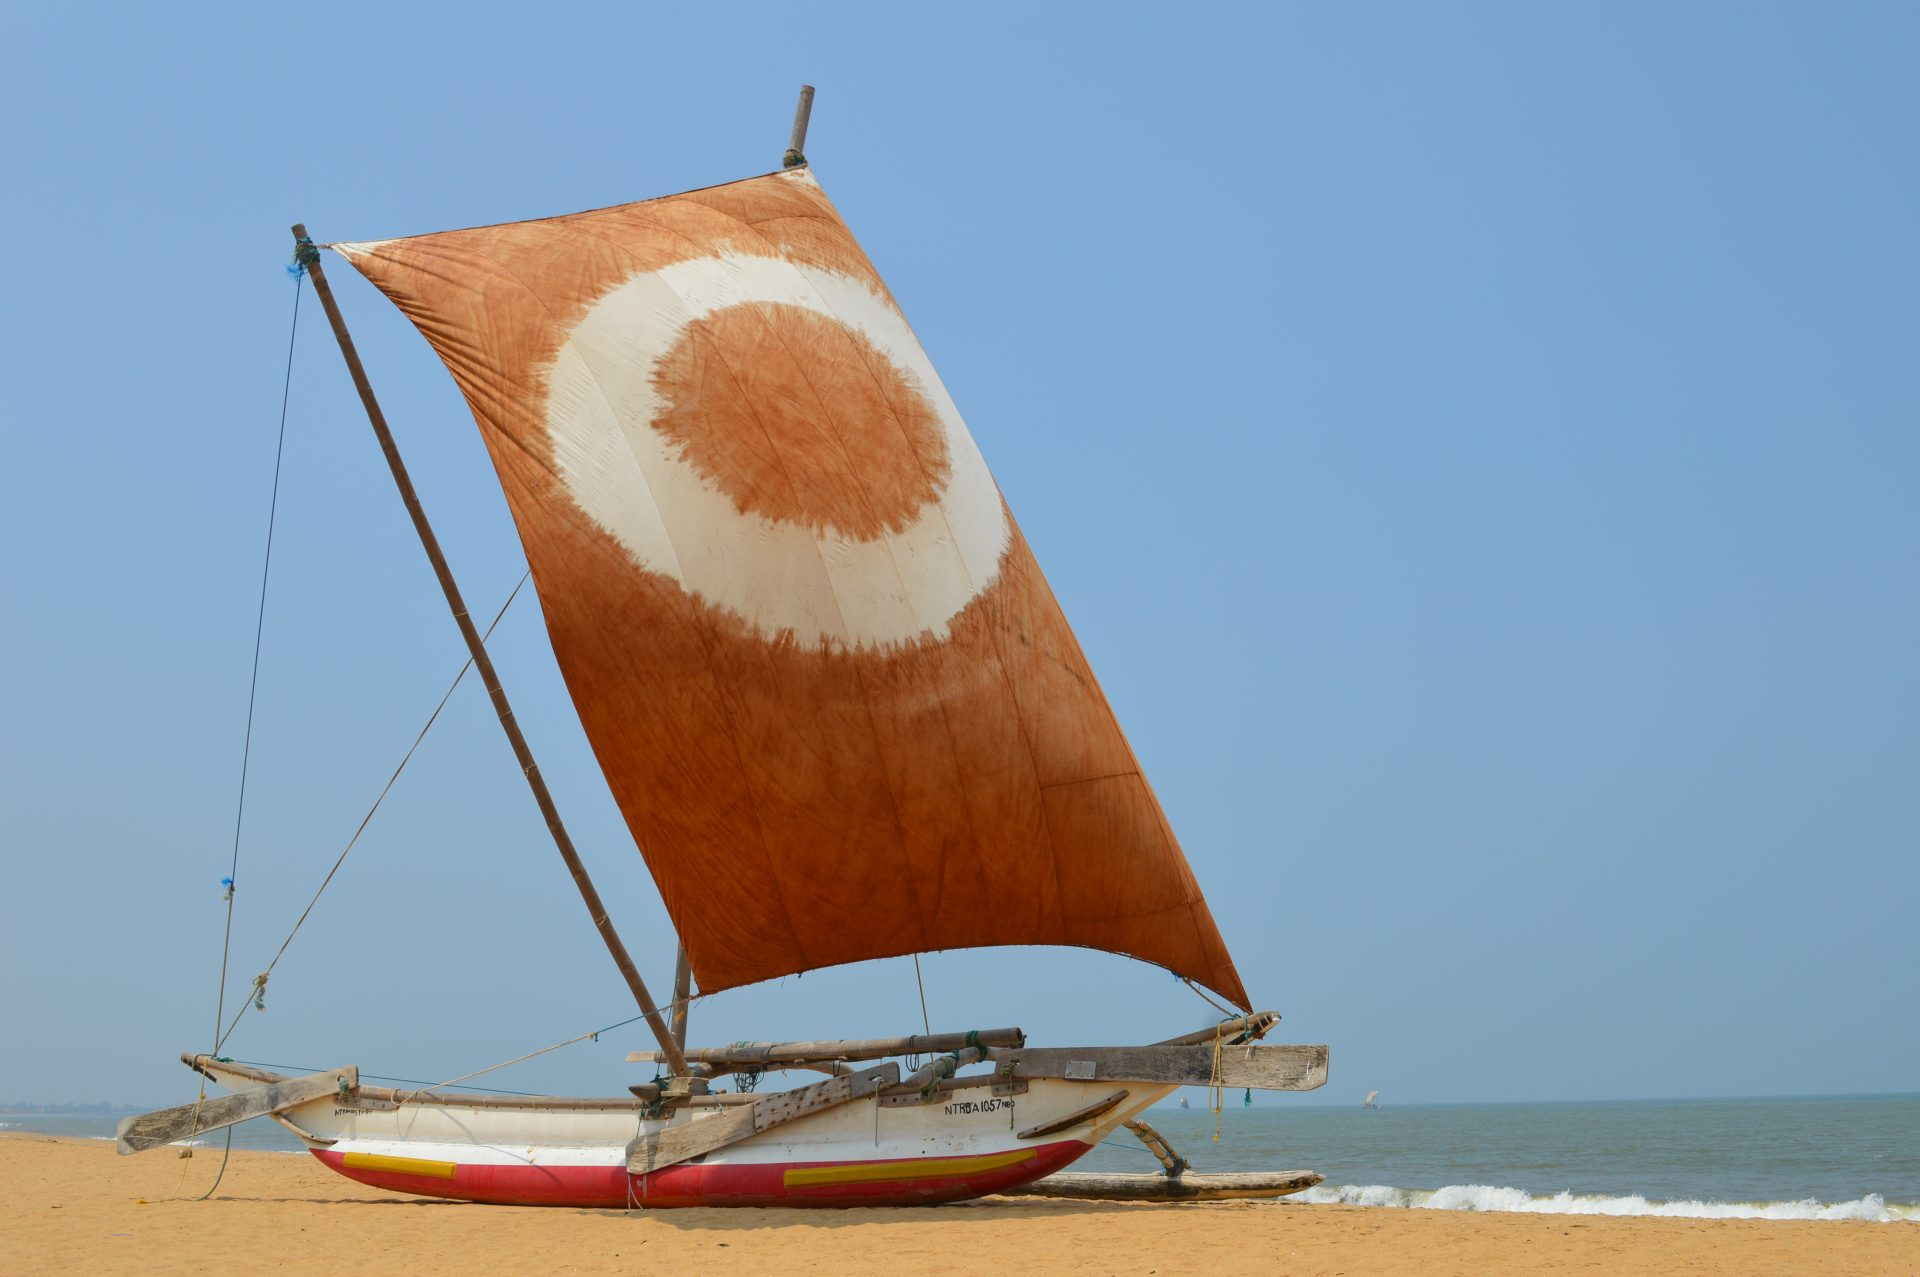 Vissersboot in Negombo